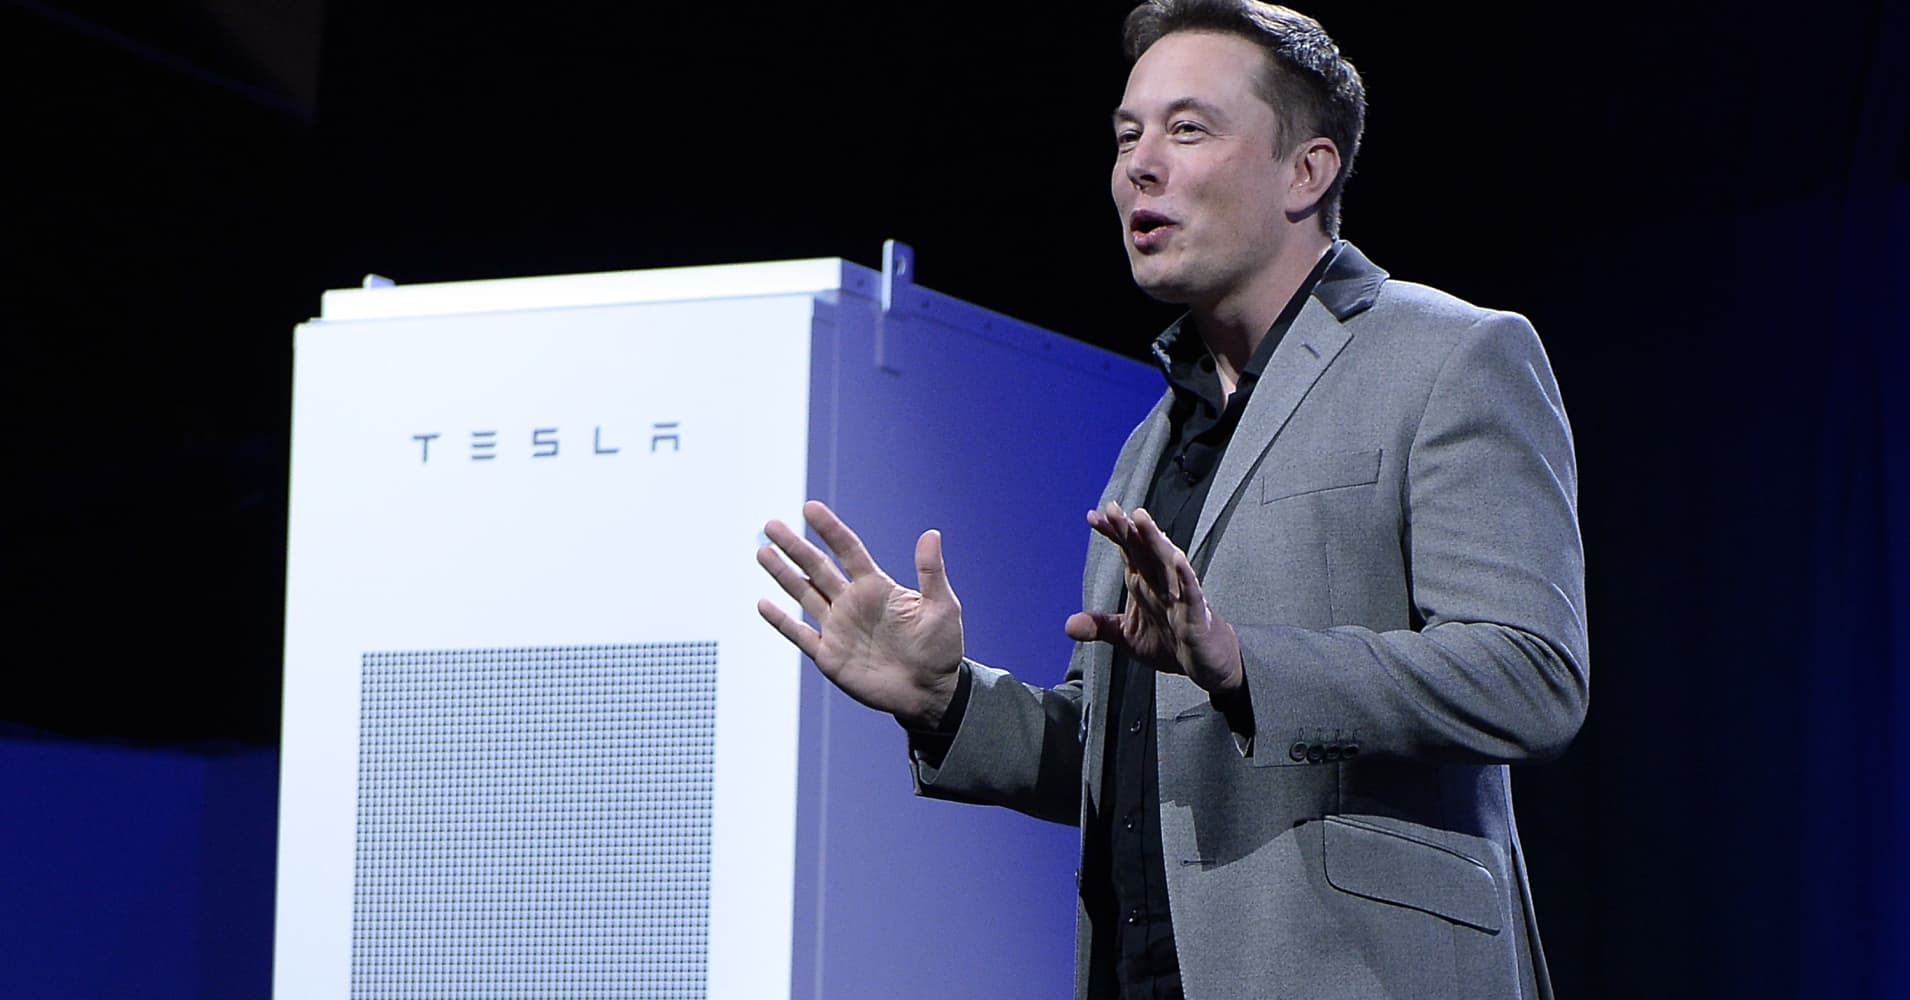 Elon Musk, CEO of Tesla, with a Powerpack unit the background unveils suit of batteries for homes, businesses, and utilities.